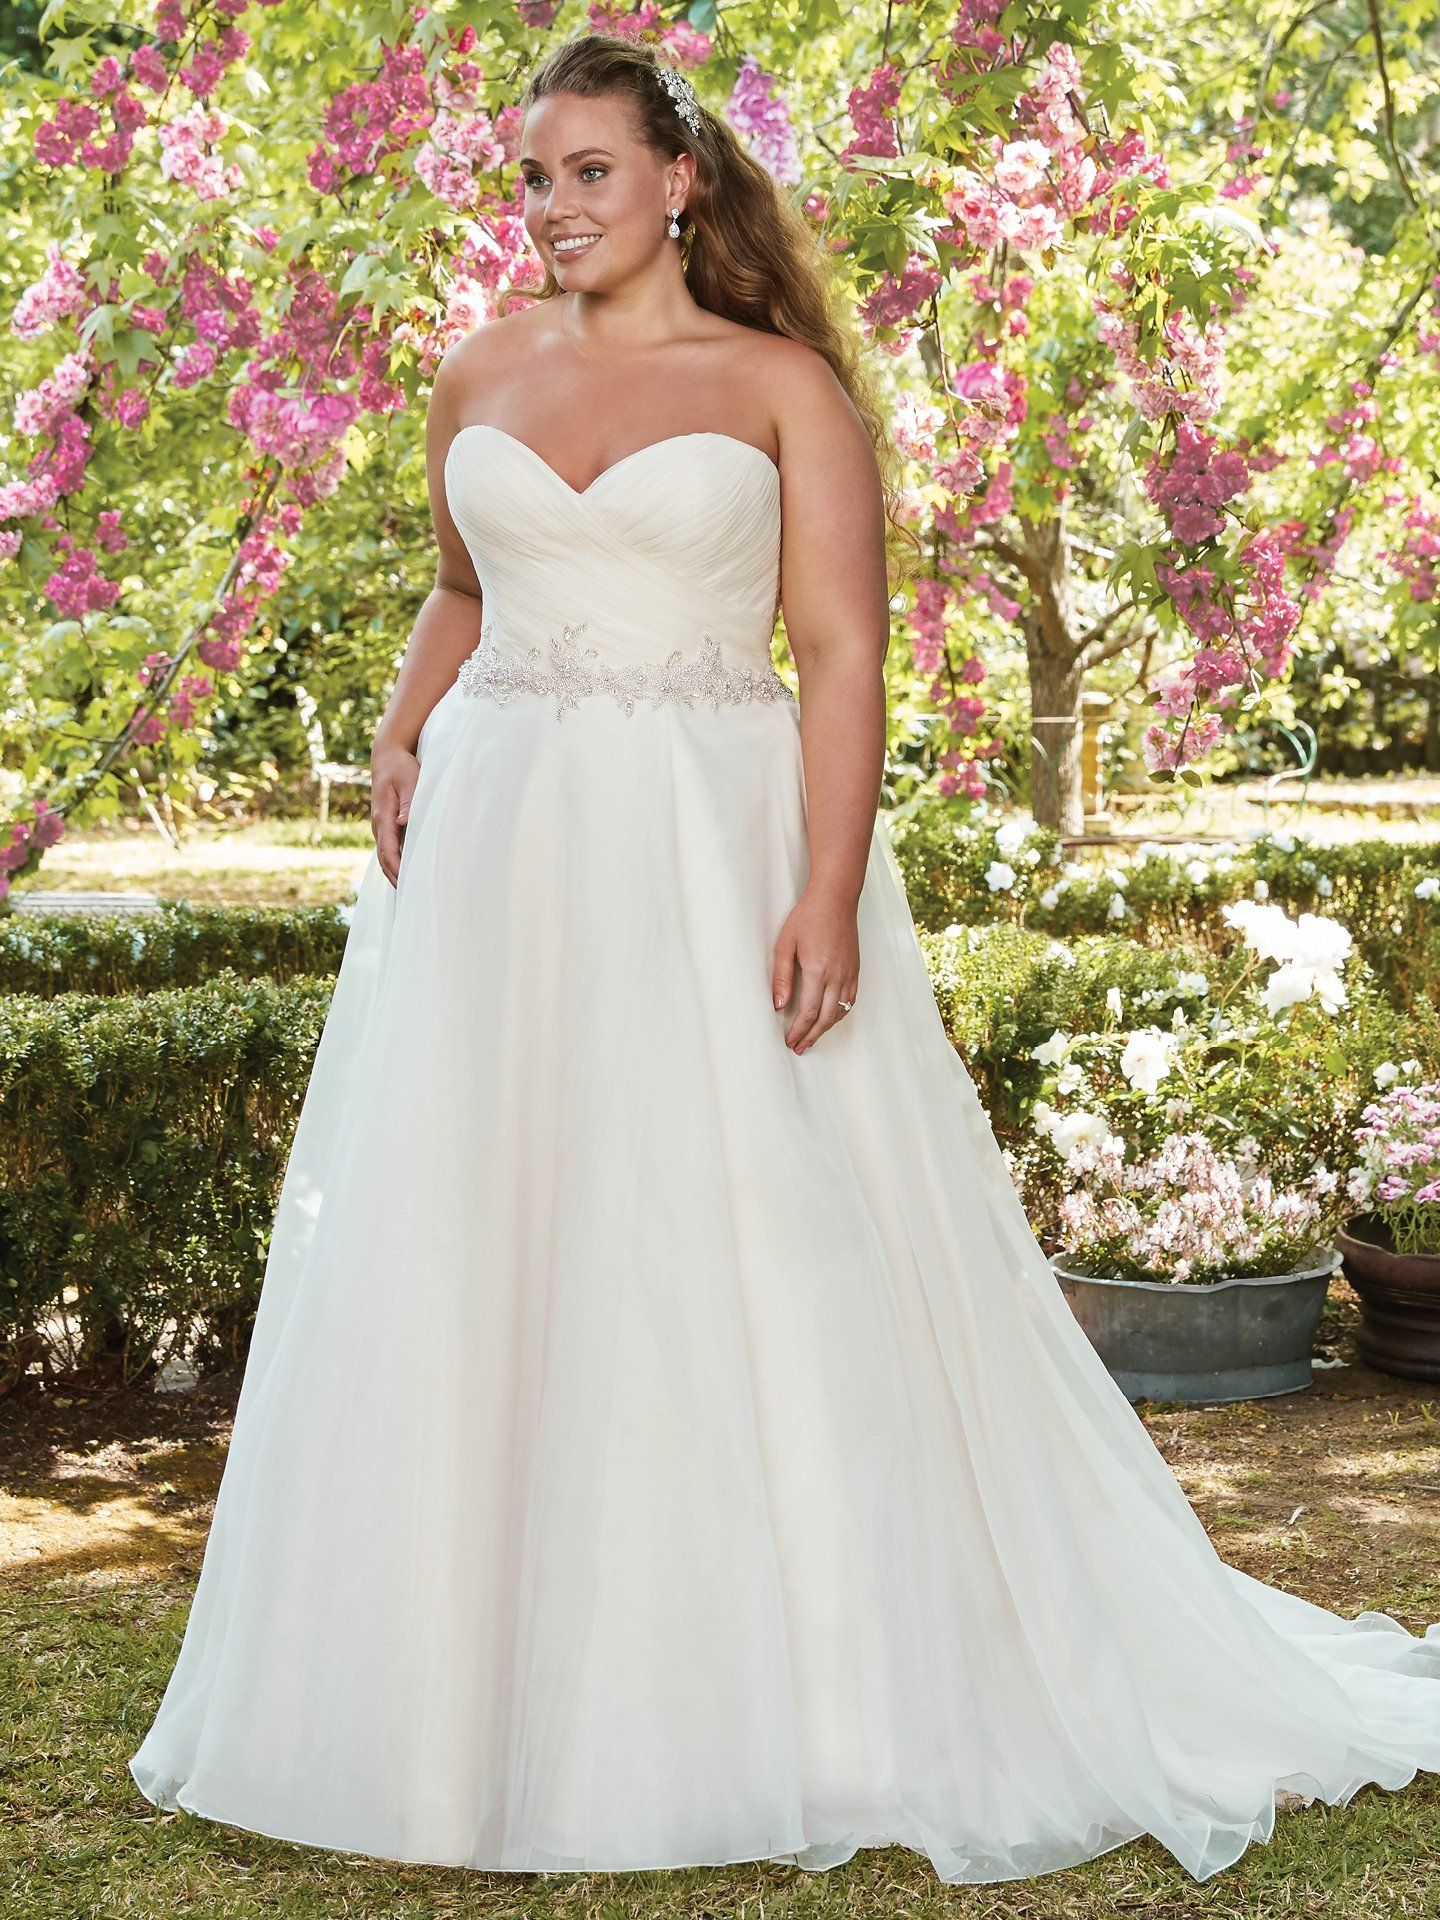 Wedding dress for your body  Weuve Found the Perfect Dress for Your Body Type  Wedding dress